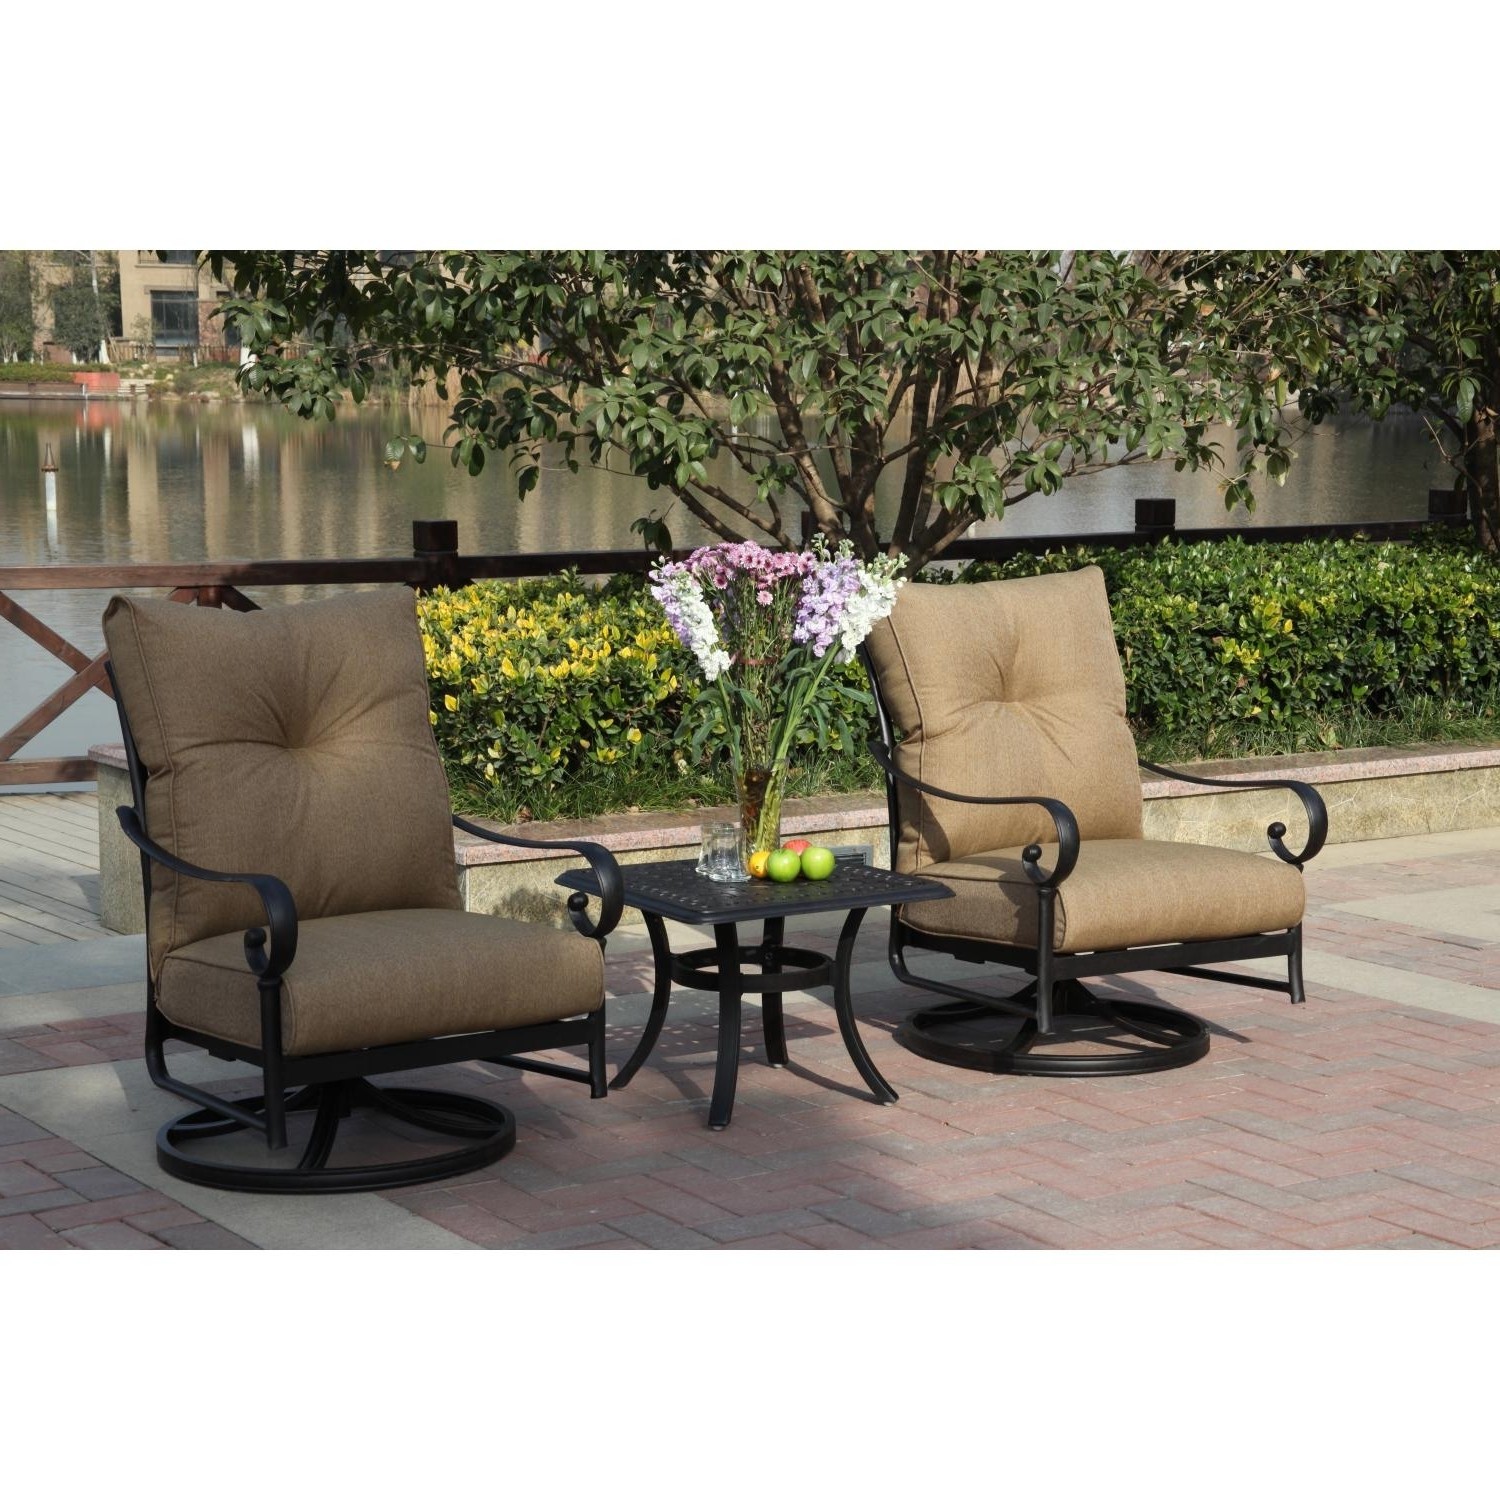 Darlee Santa Anita 3 Piece Aluminum Patio Conversation Seating Set Throughout Popular Deep Seating Patio Conversation Sets (View 6 of 20)